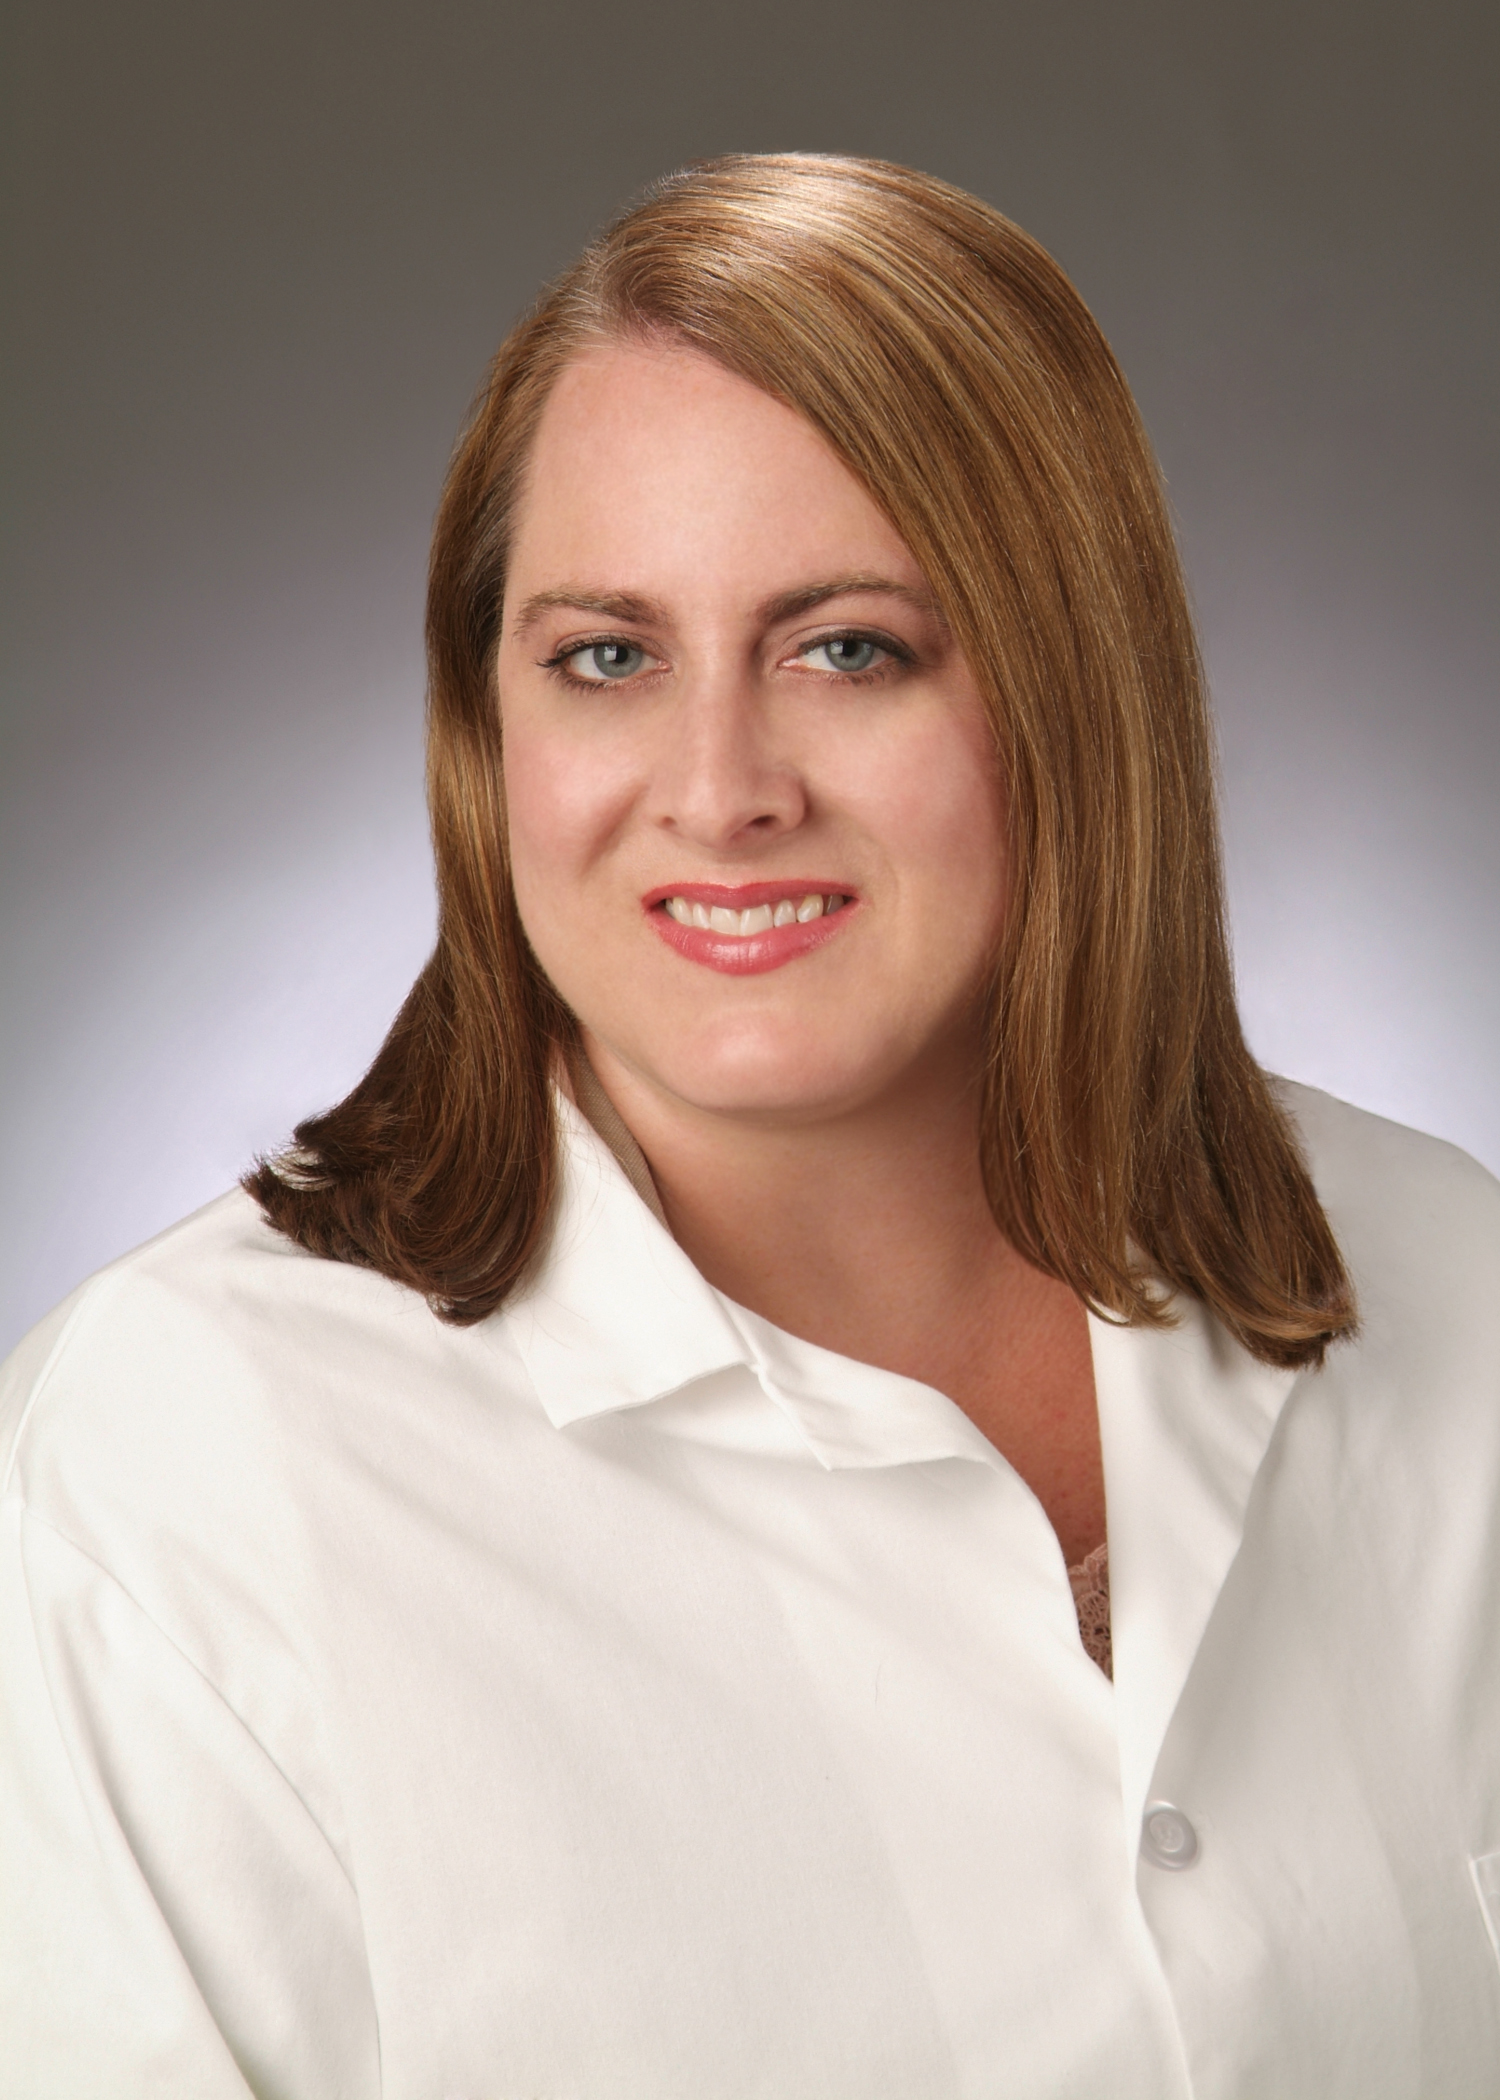 Maria Reed, PA-C - An Employed Provider of Memorial Healthcare